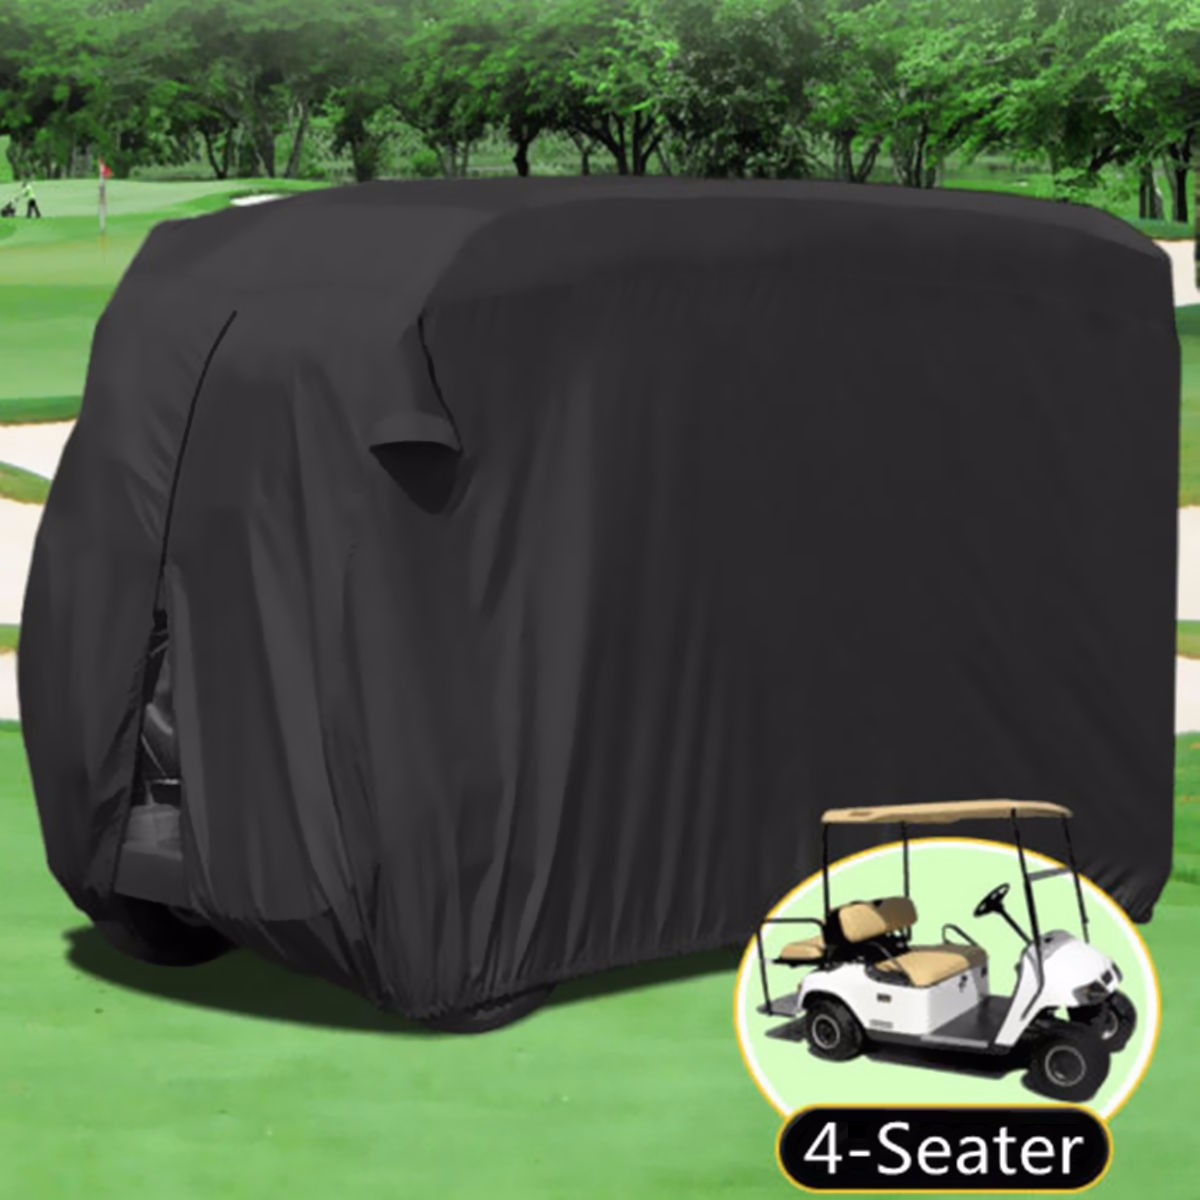 Waterproof 4 Passenger Golf Cart Cover 112''x48''x66'' fits for E Z GO, Club Car and for Yamaha G model by